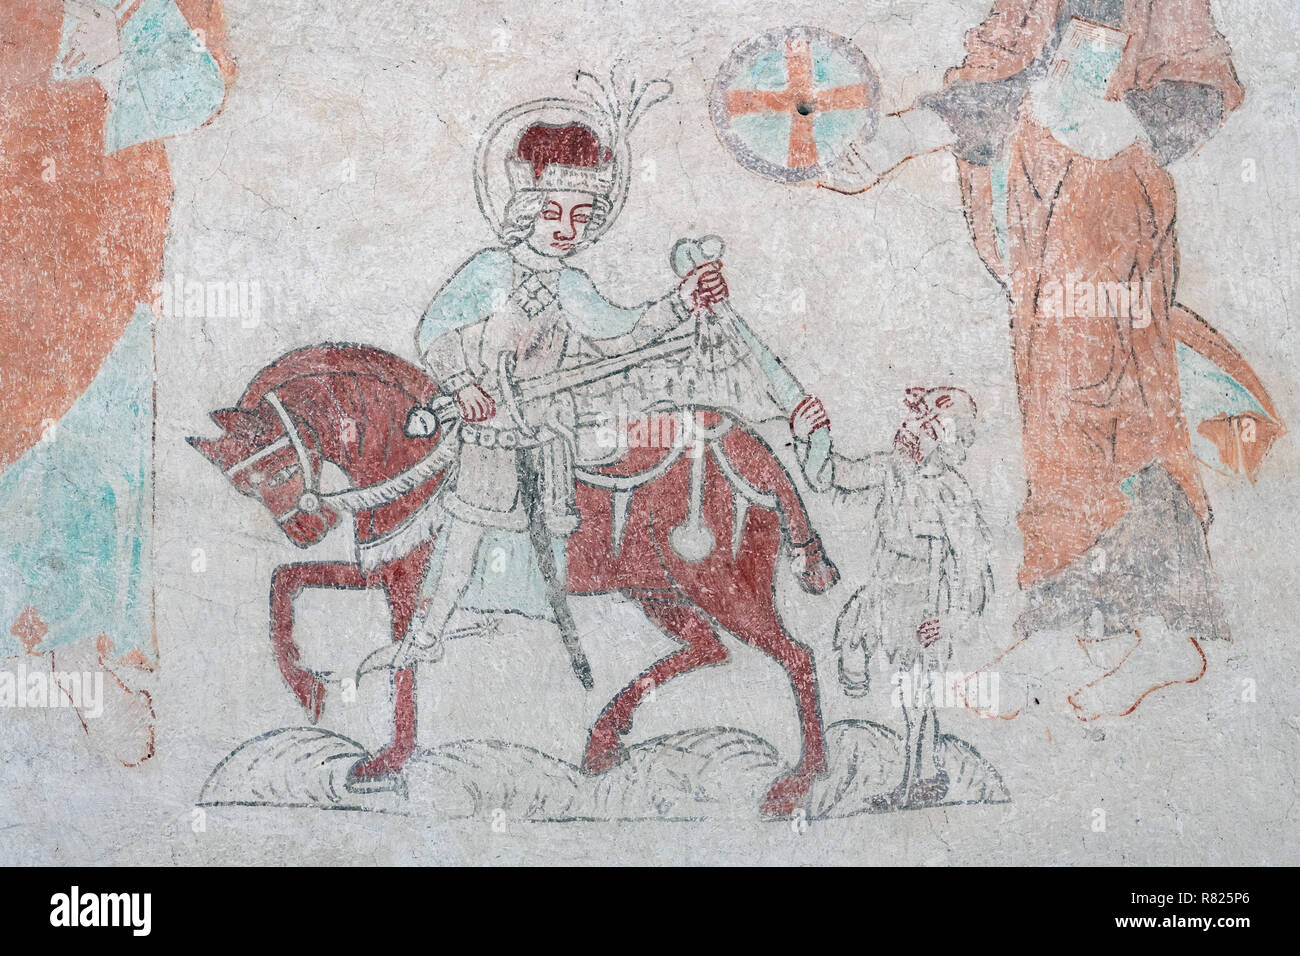 St. Martin and the Beggar, medieval mural painting, church of Hejdeby, diocese of Visby, island of Gotland, Sweden - Stock Image